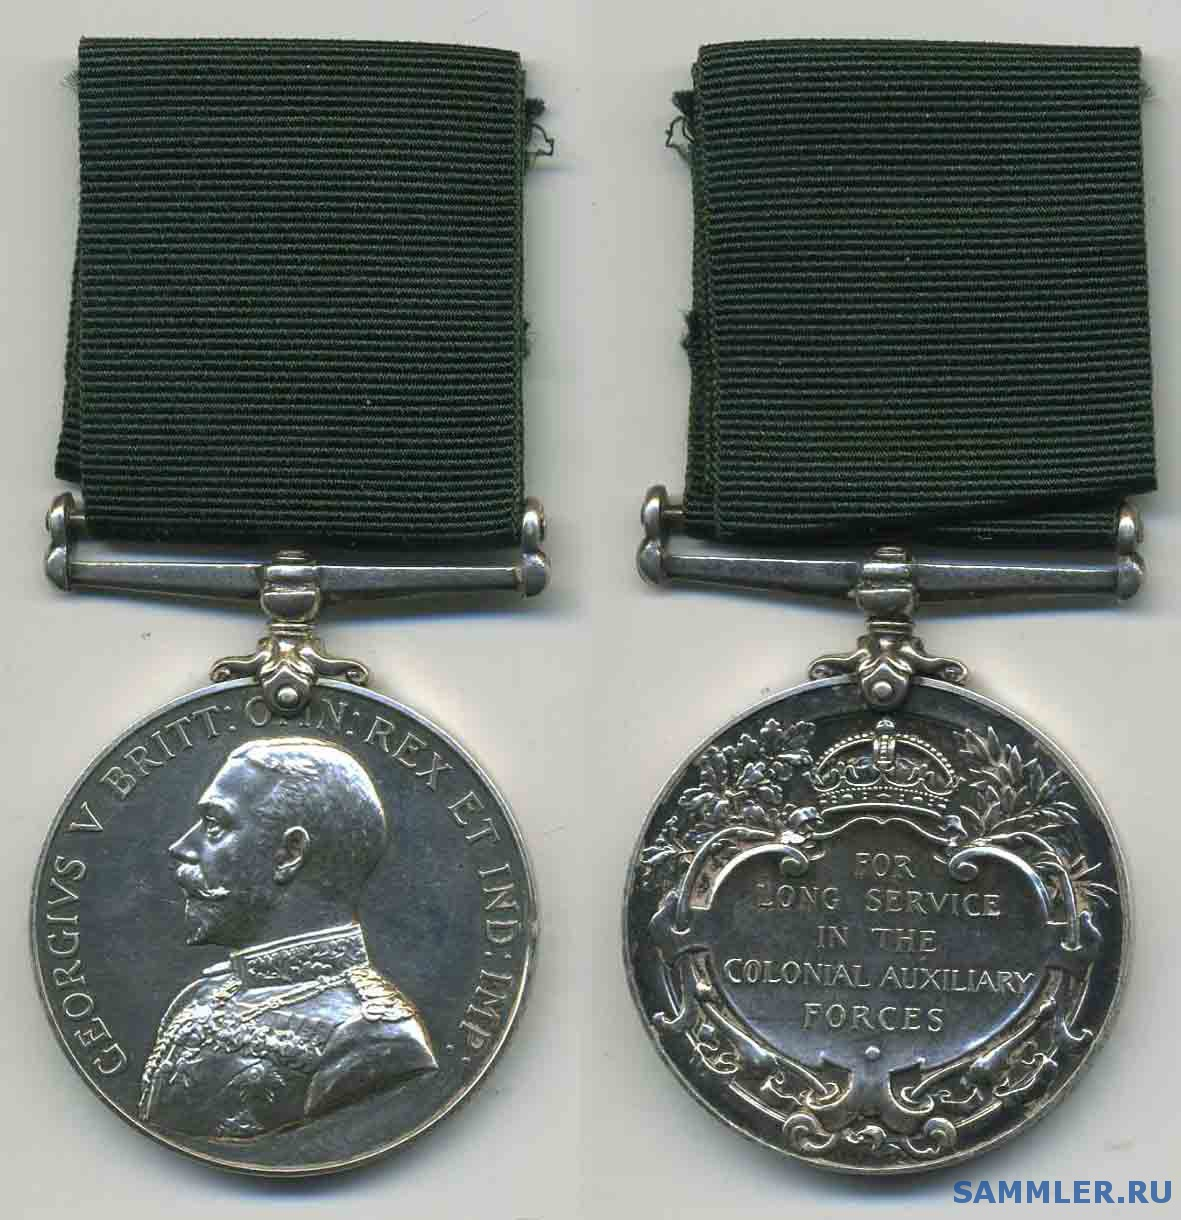 Colonial_Auxilary_Force_LS_Medal__GV_.jpg